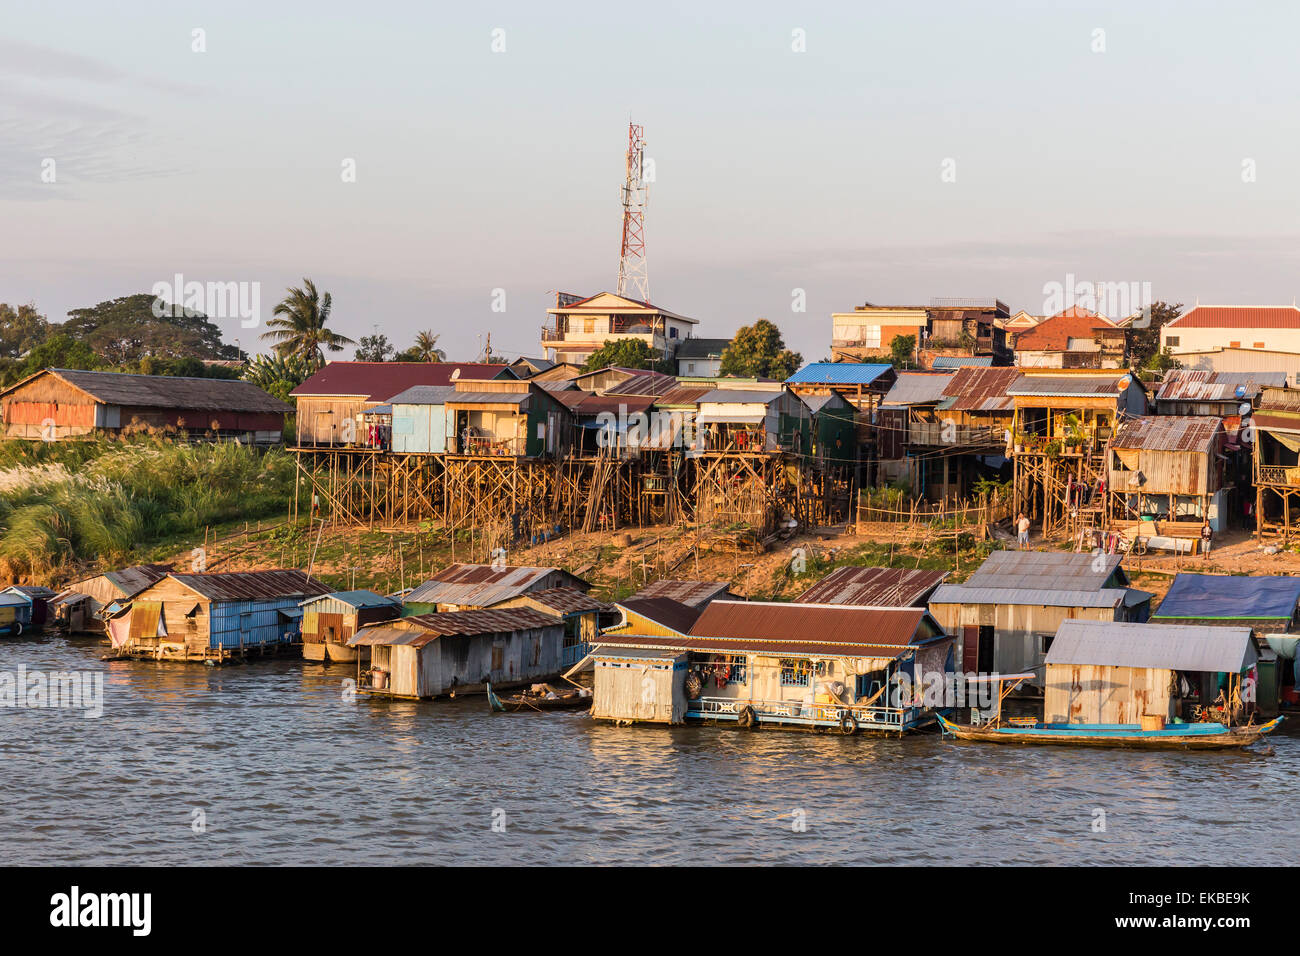 Life along the Mekong River approaching the capital city of Phnom Penh, Cambodia, Indochina, Southeast Asia, Asia - Stock Image